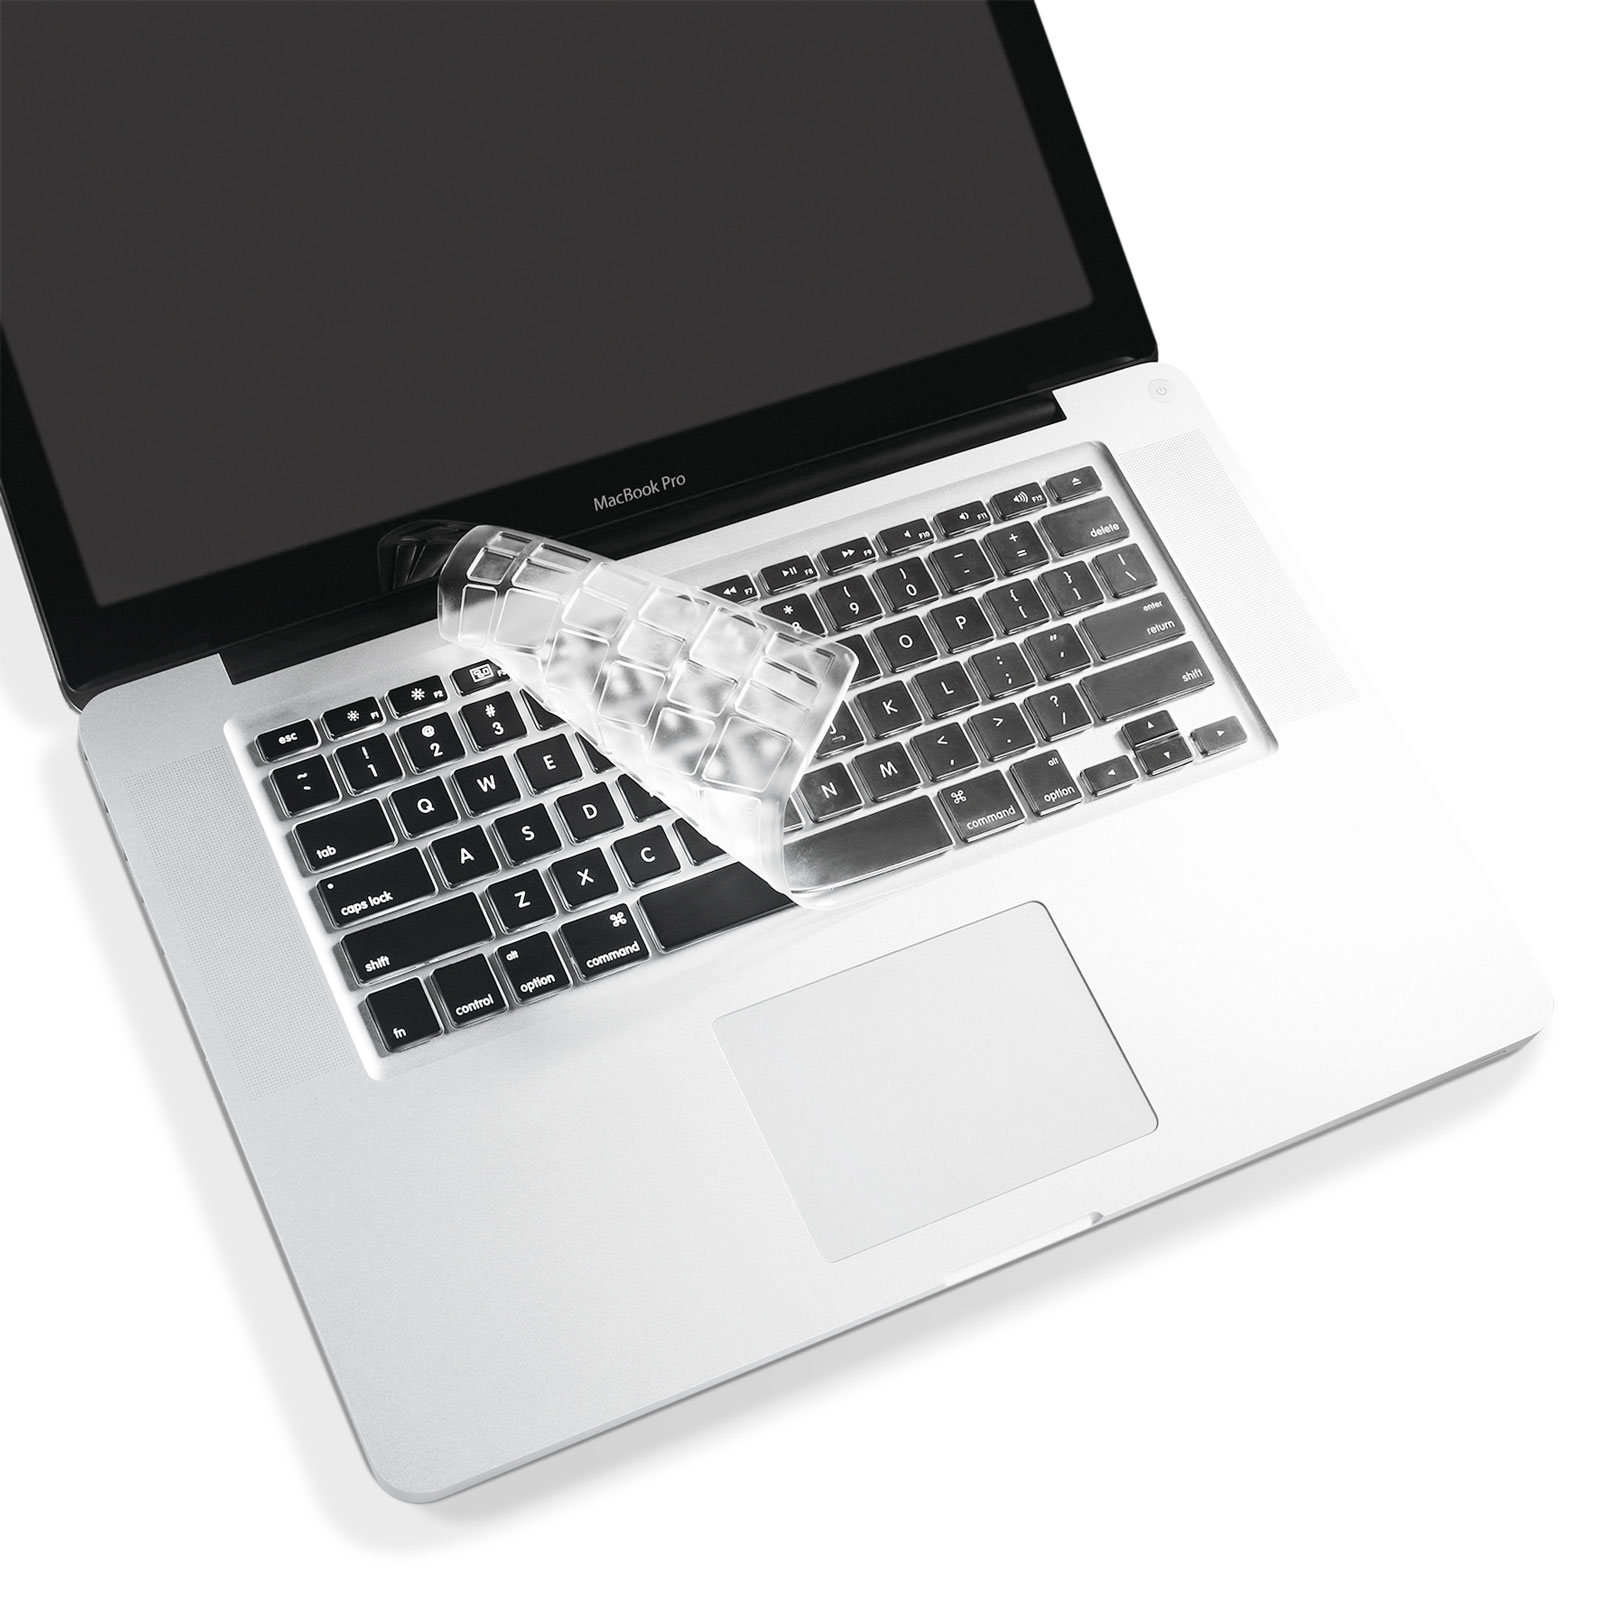 9f31d7a0bed MacBook Keyboard Protector US - Shop Keyboard Cover | ClearGuard by ...